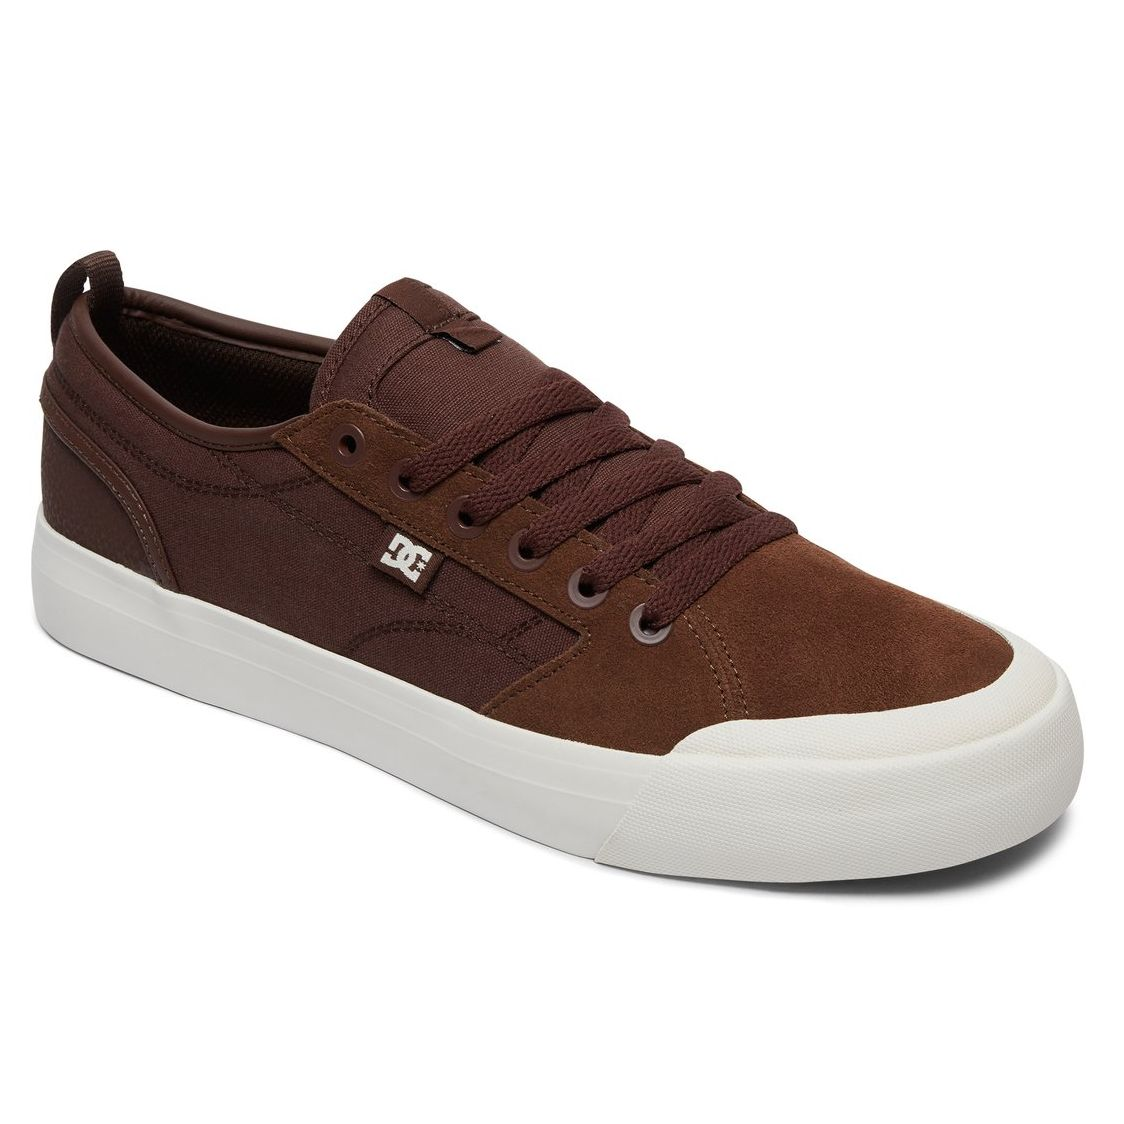 Chaussures DC Shoes EVAN SMITH